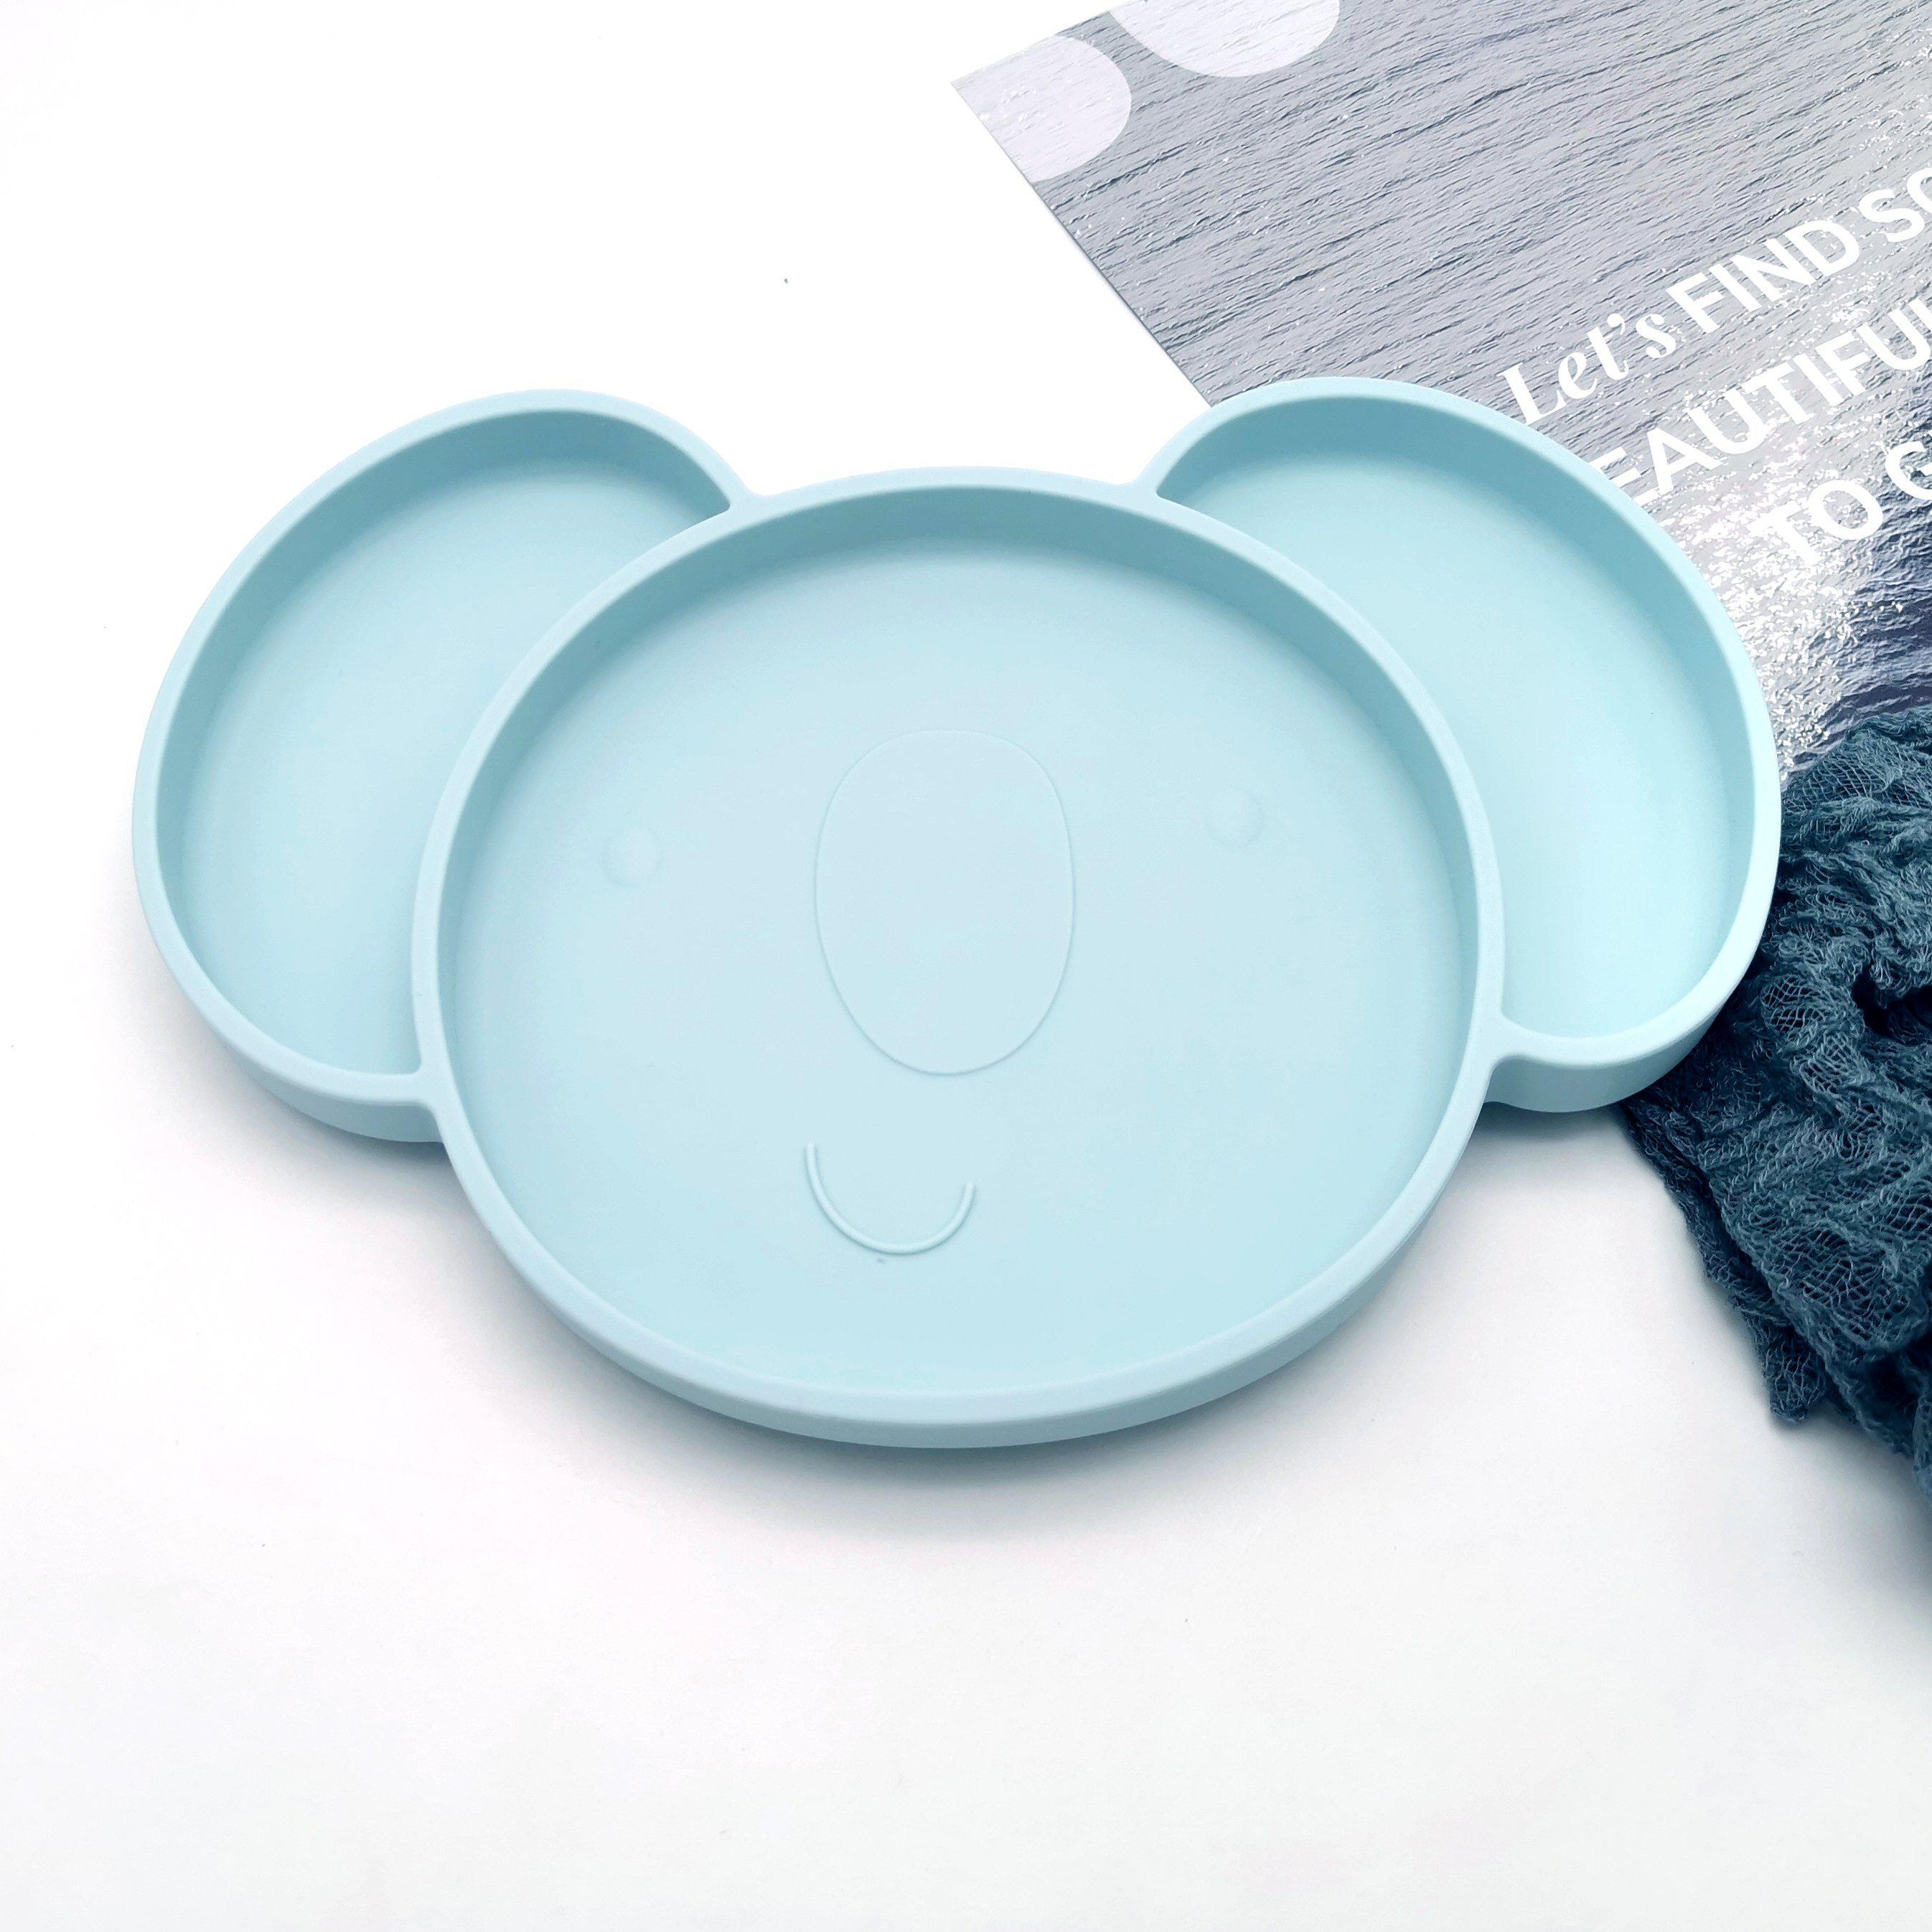 Kaia the Koala Silicone Suction Plate